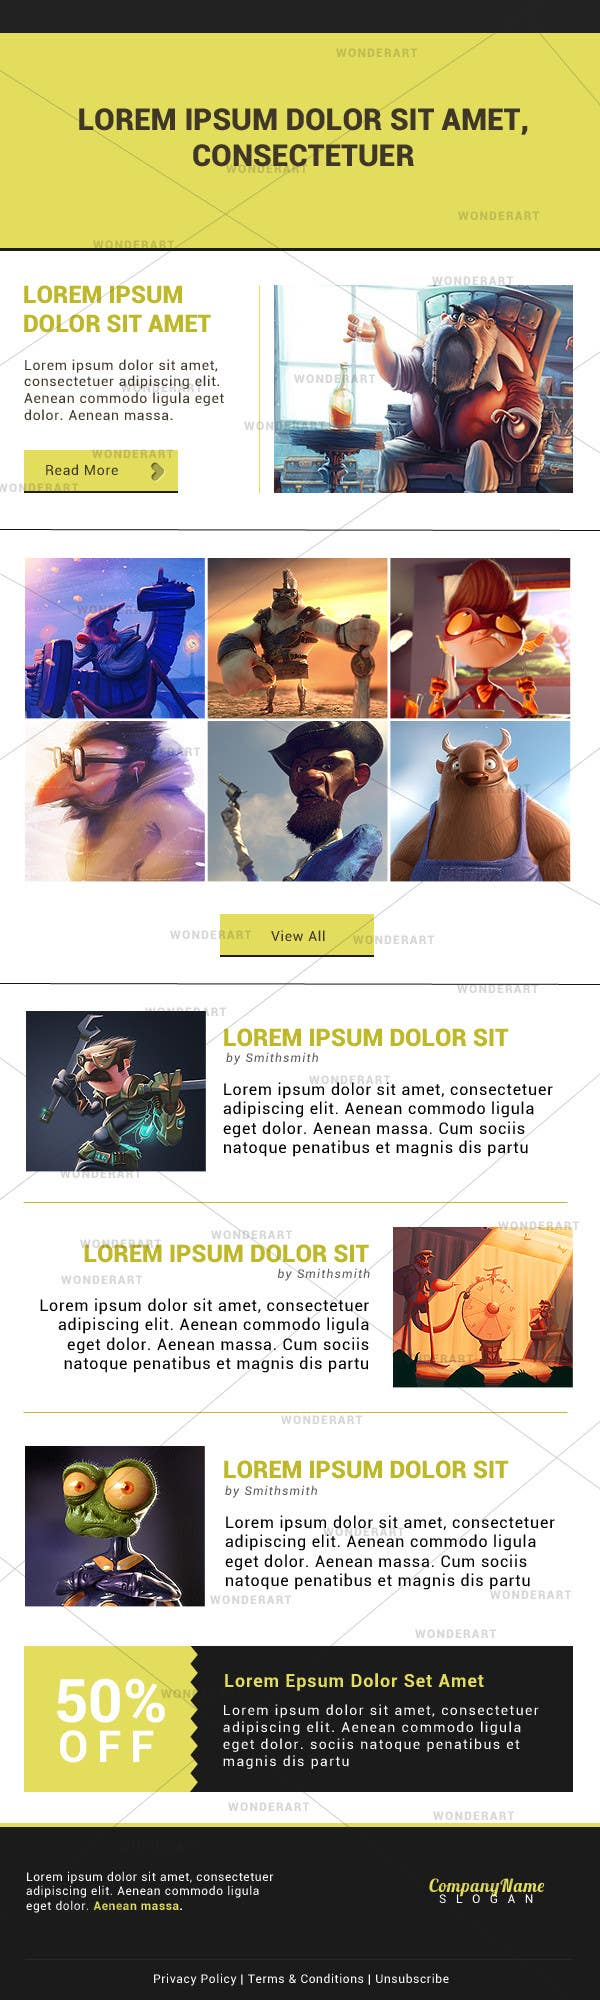 #1 for Email Template & Design by wonderart